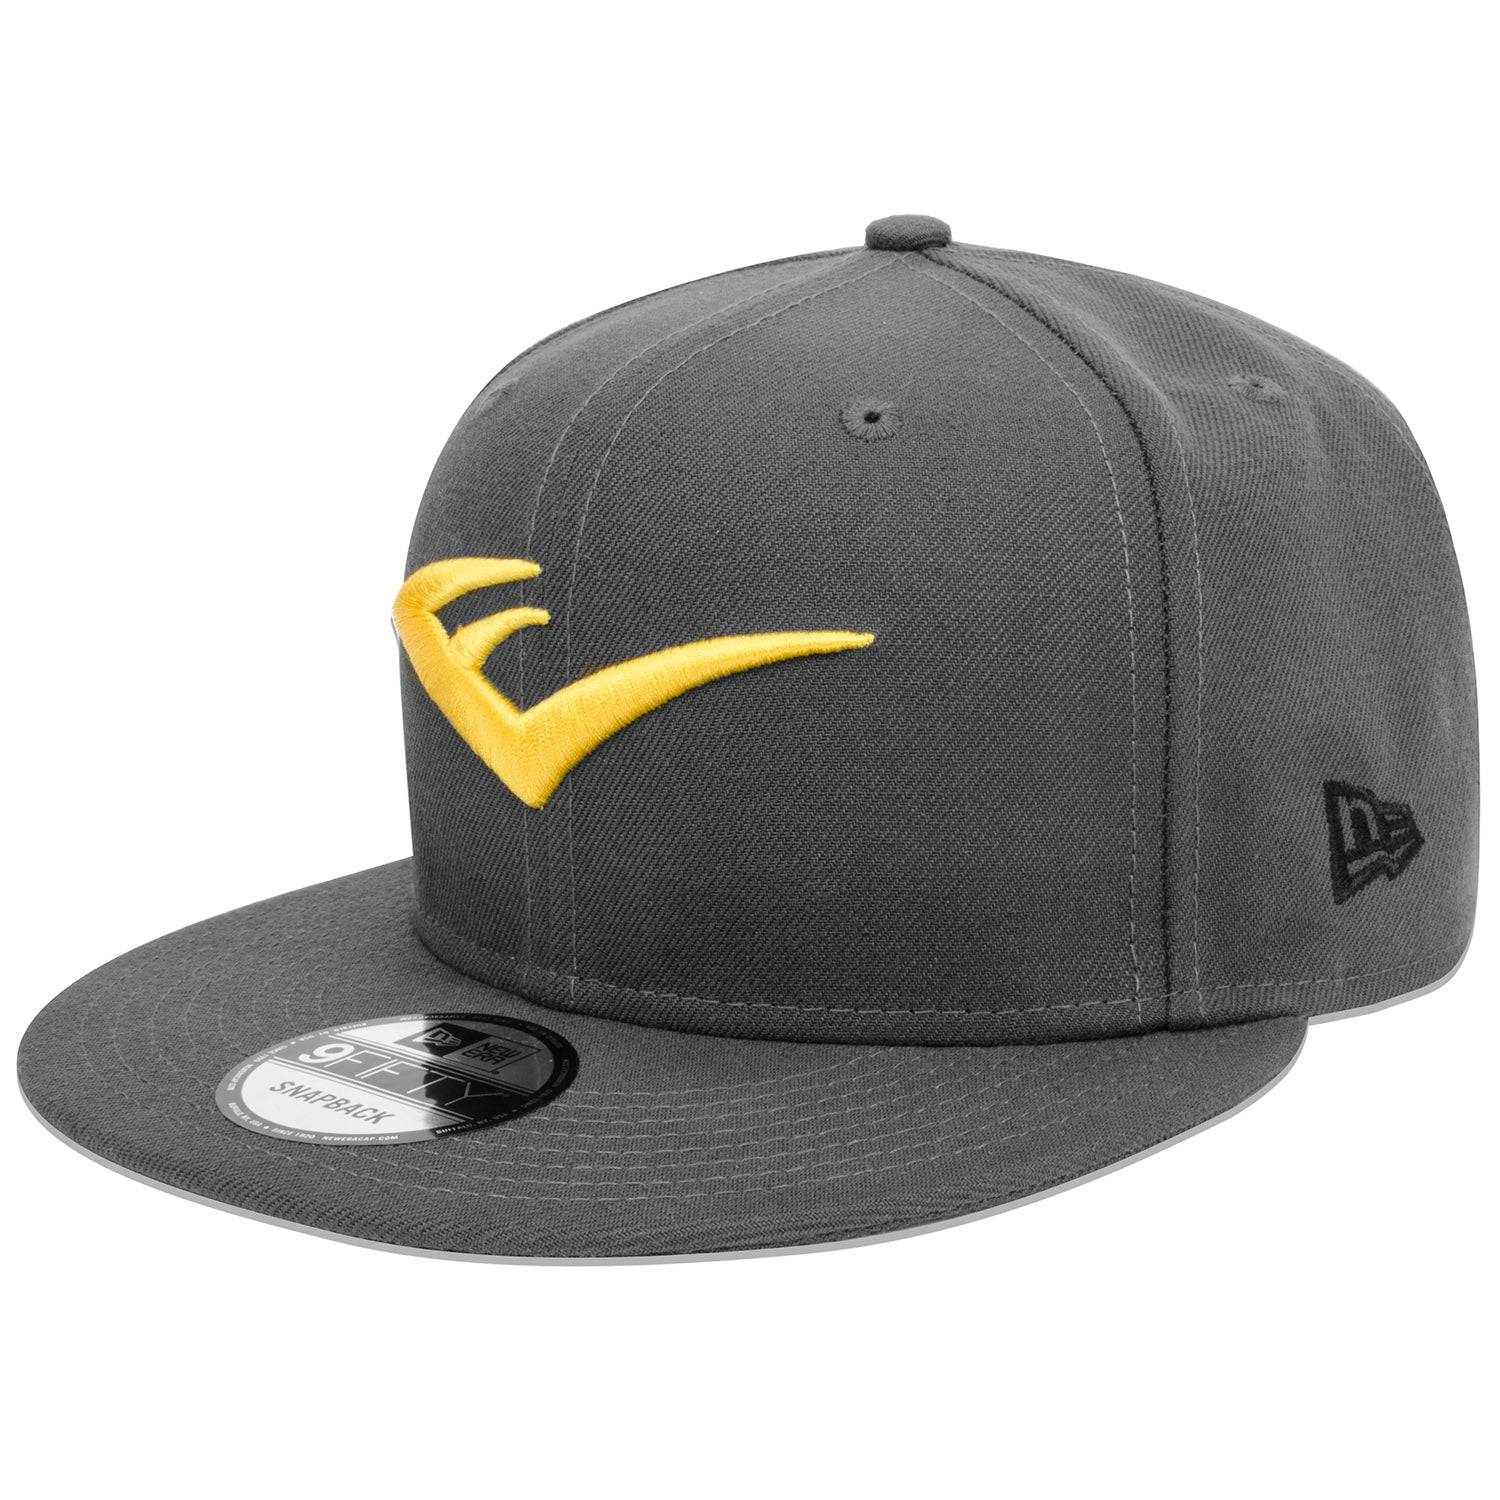 57f4bee40 ... promo code for everlast new era 9fifty graphite snapback e logo cap by  everlast canada da9b4